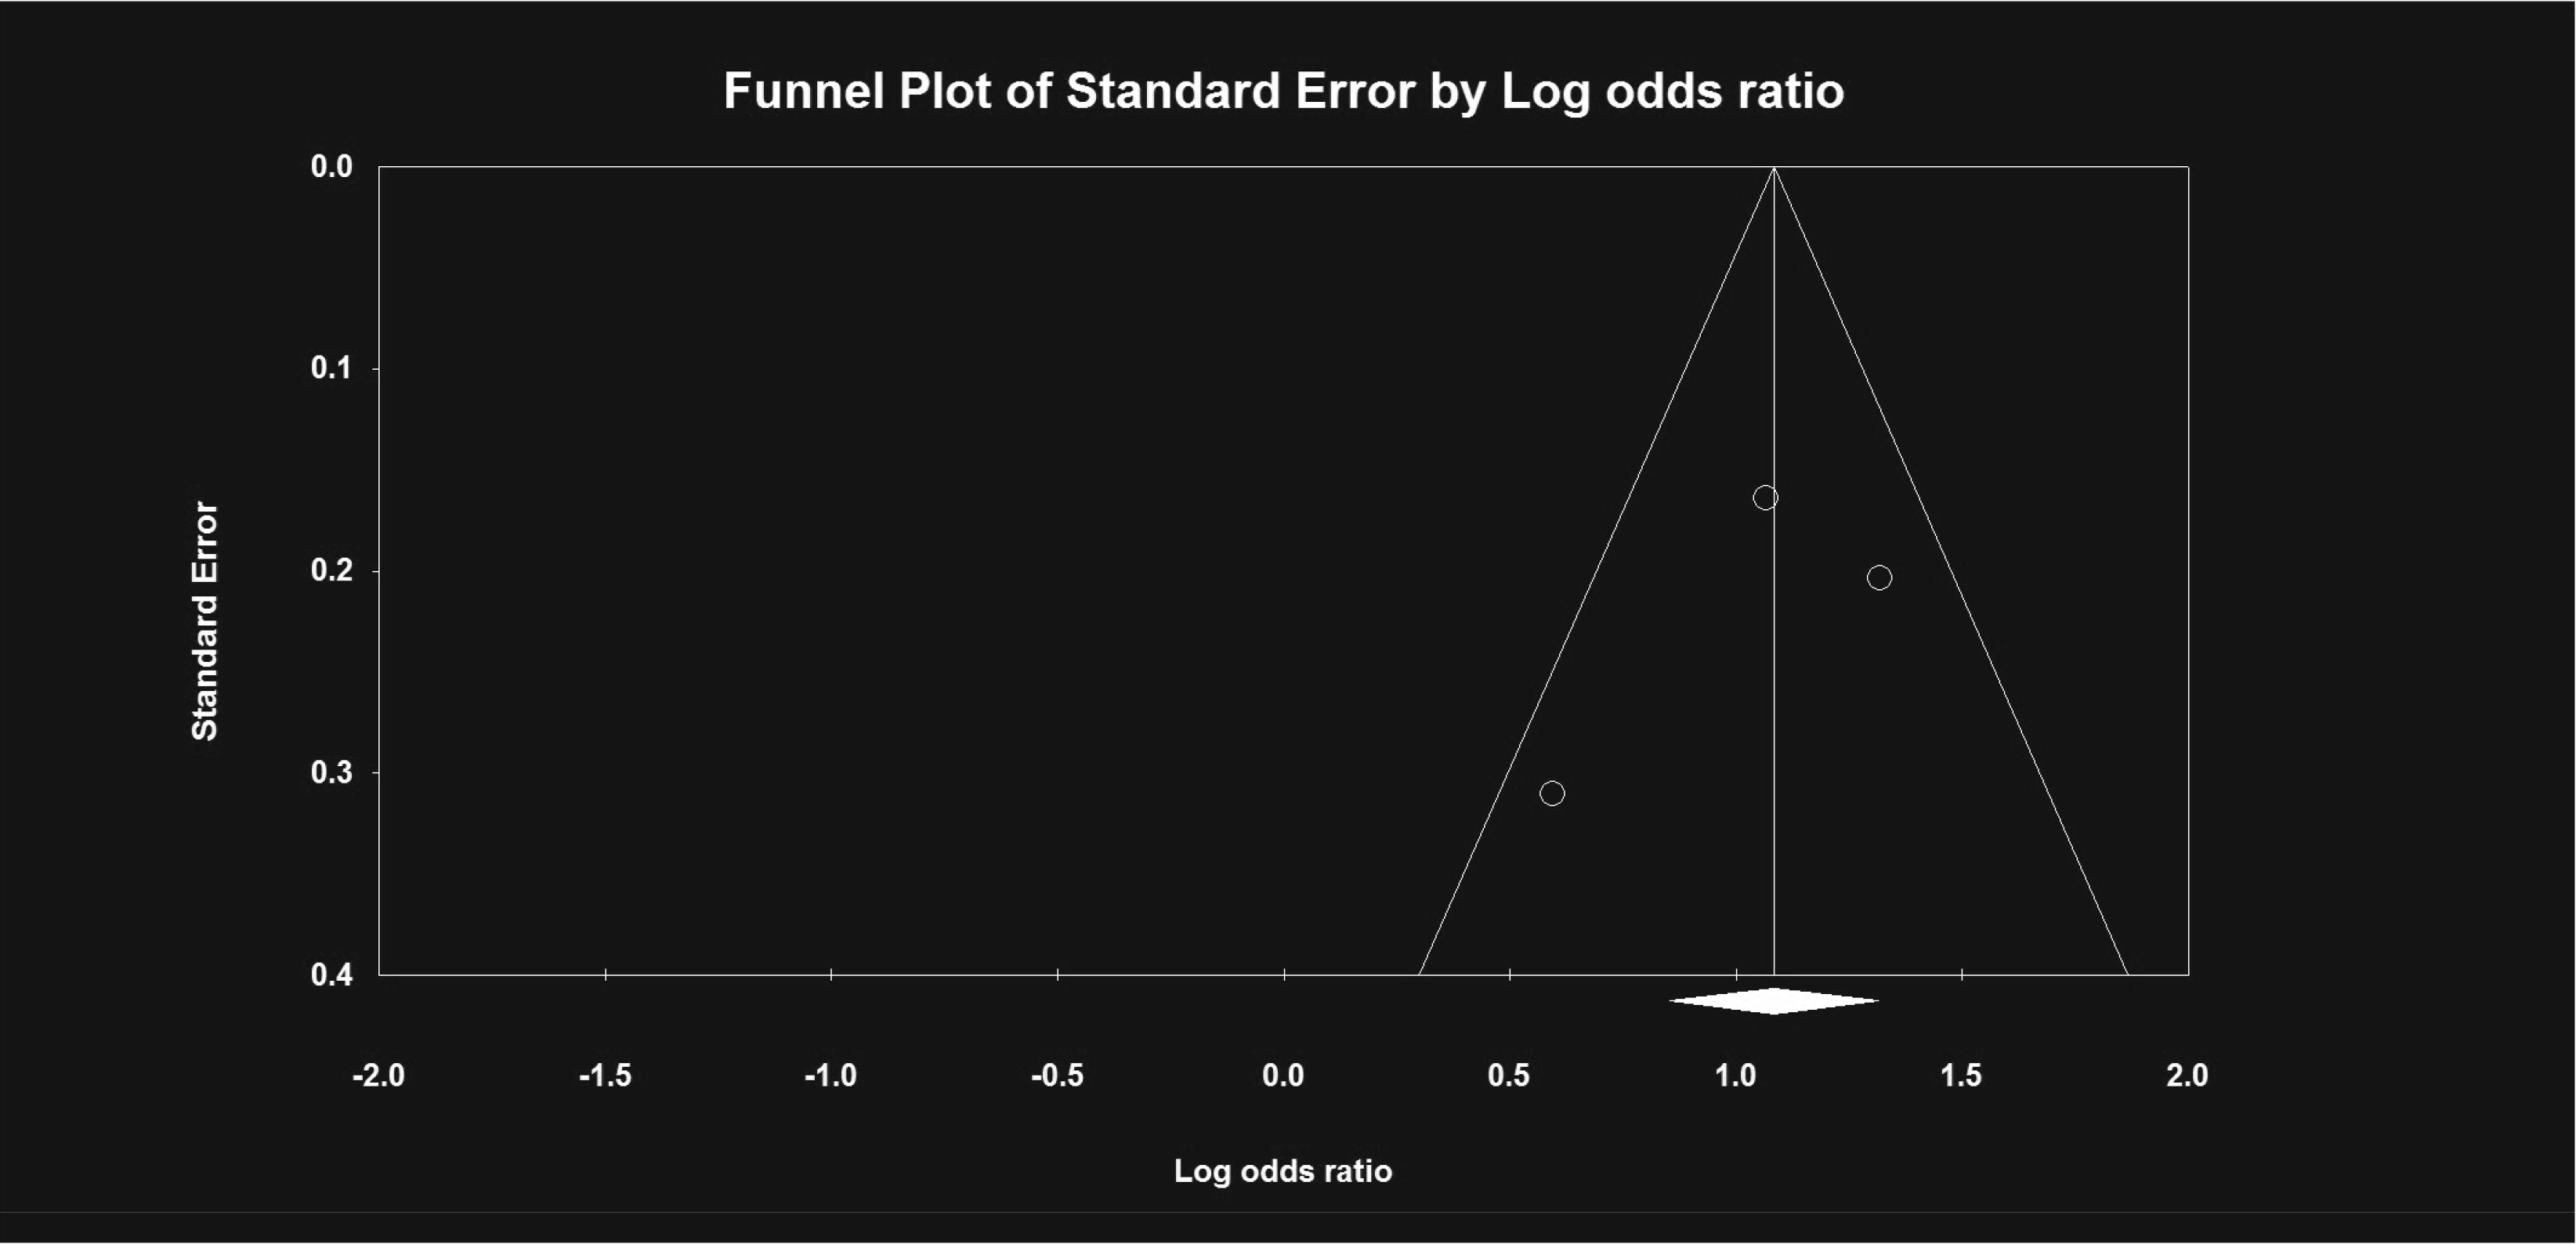 Funnel plot of standard error by log odds ratio showing no evidence of publication bias.